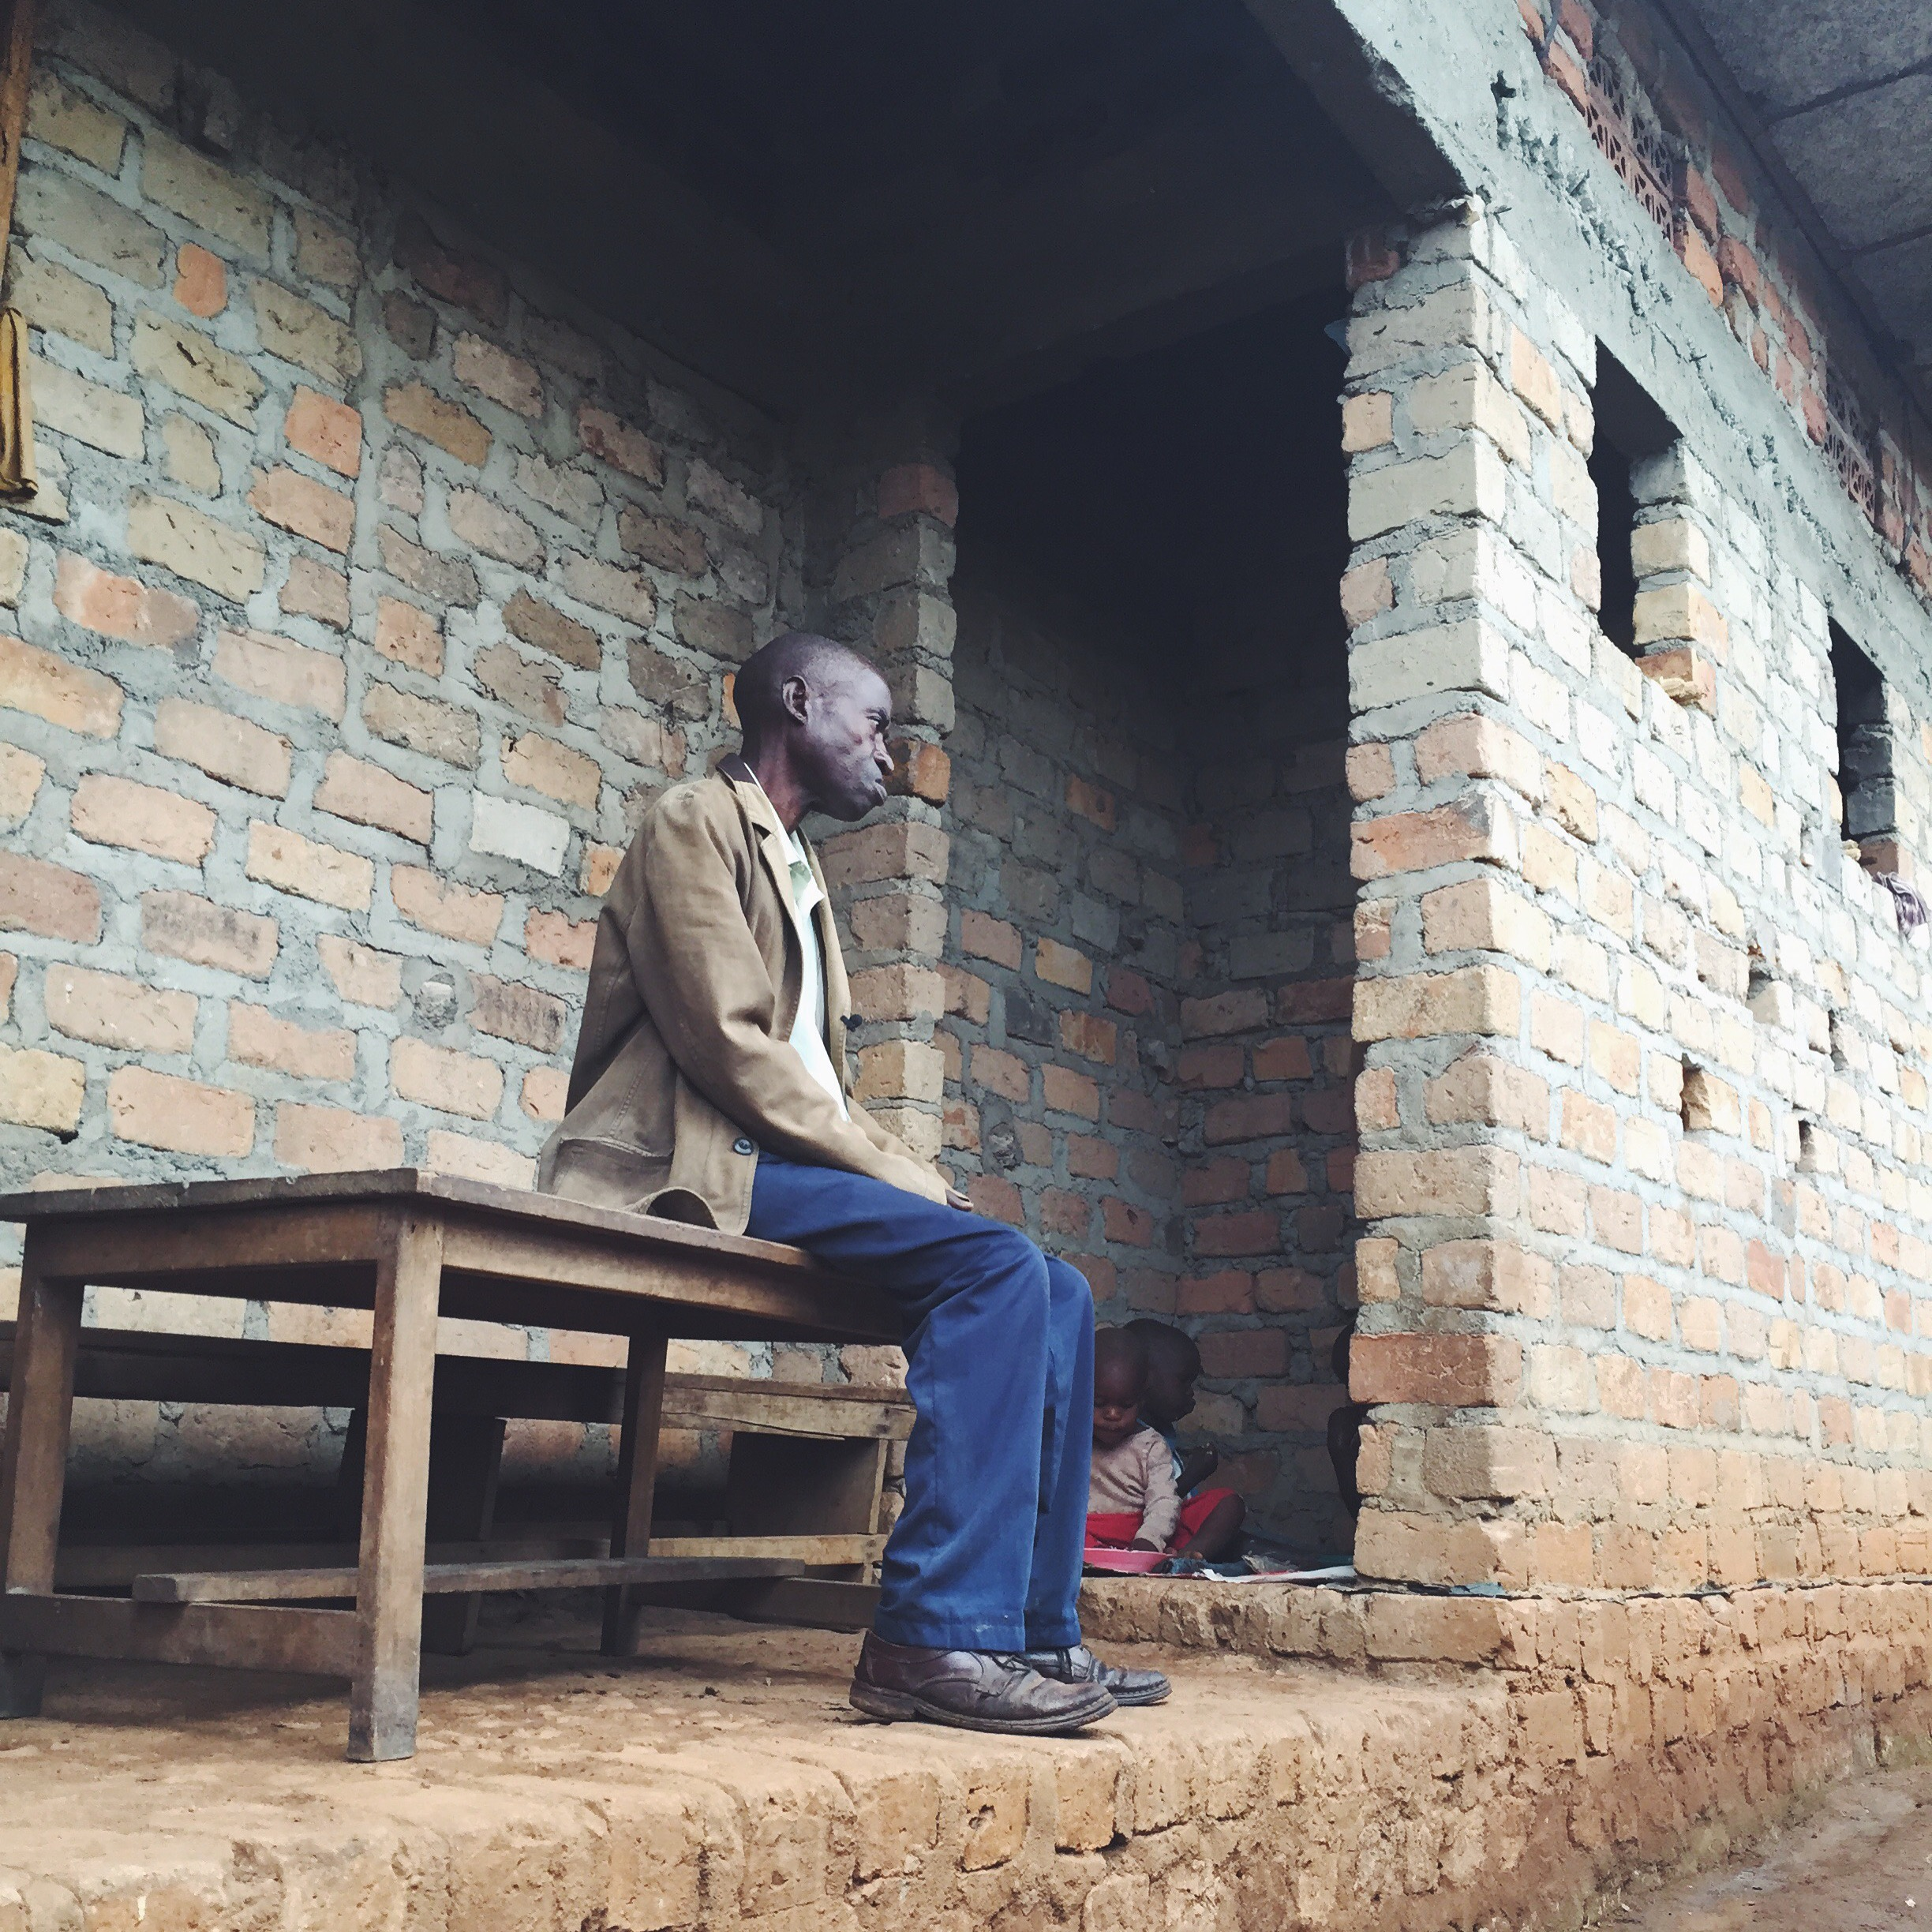 UGANDA: [Home Visit] Mr. Sentongo takes care of his 3 grandchildren living in an abandoned building. His daughter is on the streets and doesnt take care of them so he does. Mr. S was another instant hero. I wrote about him later that day on an instagram post.